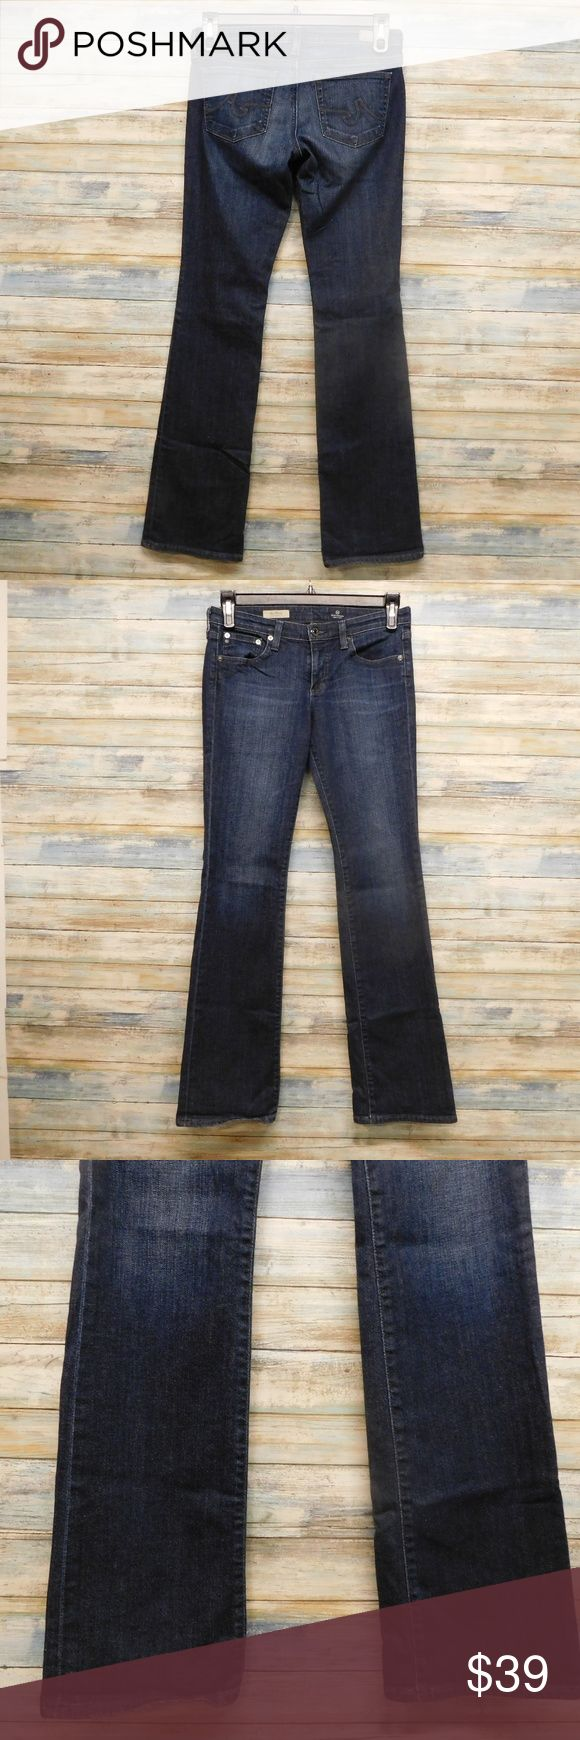 """AG Jean Women Olivia Skinny Boot cut Stretch 29x33 AG Jeans Women Olivia Skinny Boot cut Stretch Jeans 29 x 33""""       (B-38) color: dark blue  size 29R x 33"""" inseam   actual waist measures 31"""" Rise 8""""   Leg opening laying flat 8"""" style name: The Olivia 70% cotton  28% Lyocell    2% Polyurethane IN VERY GOOD CONDITION Ag Adriano Goldschmied Jeans Skinny"""